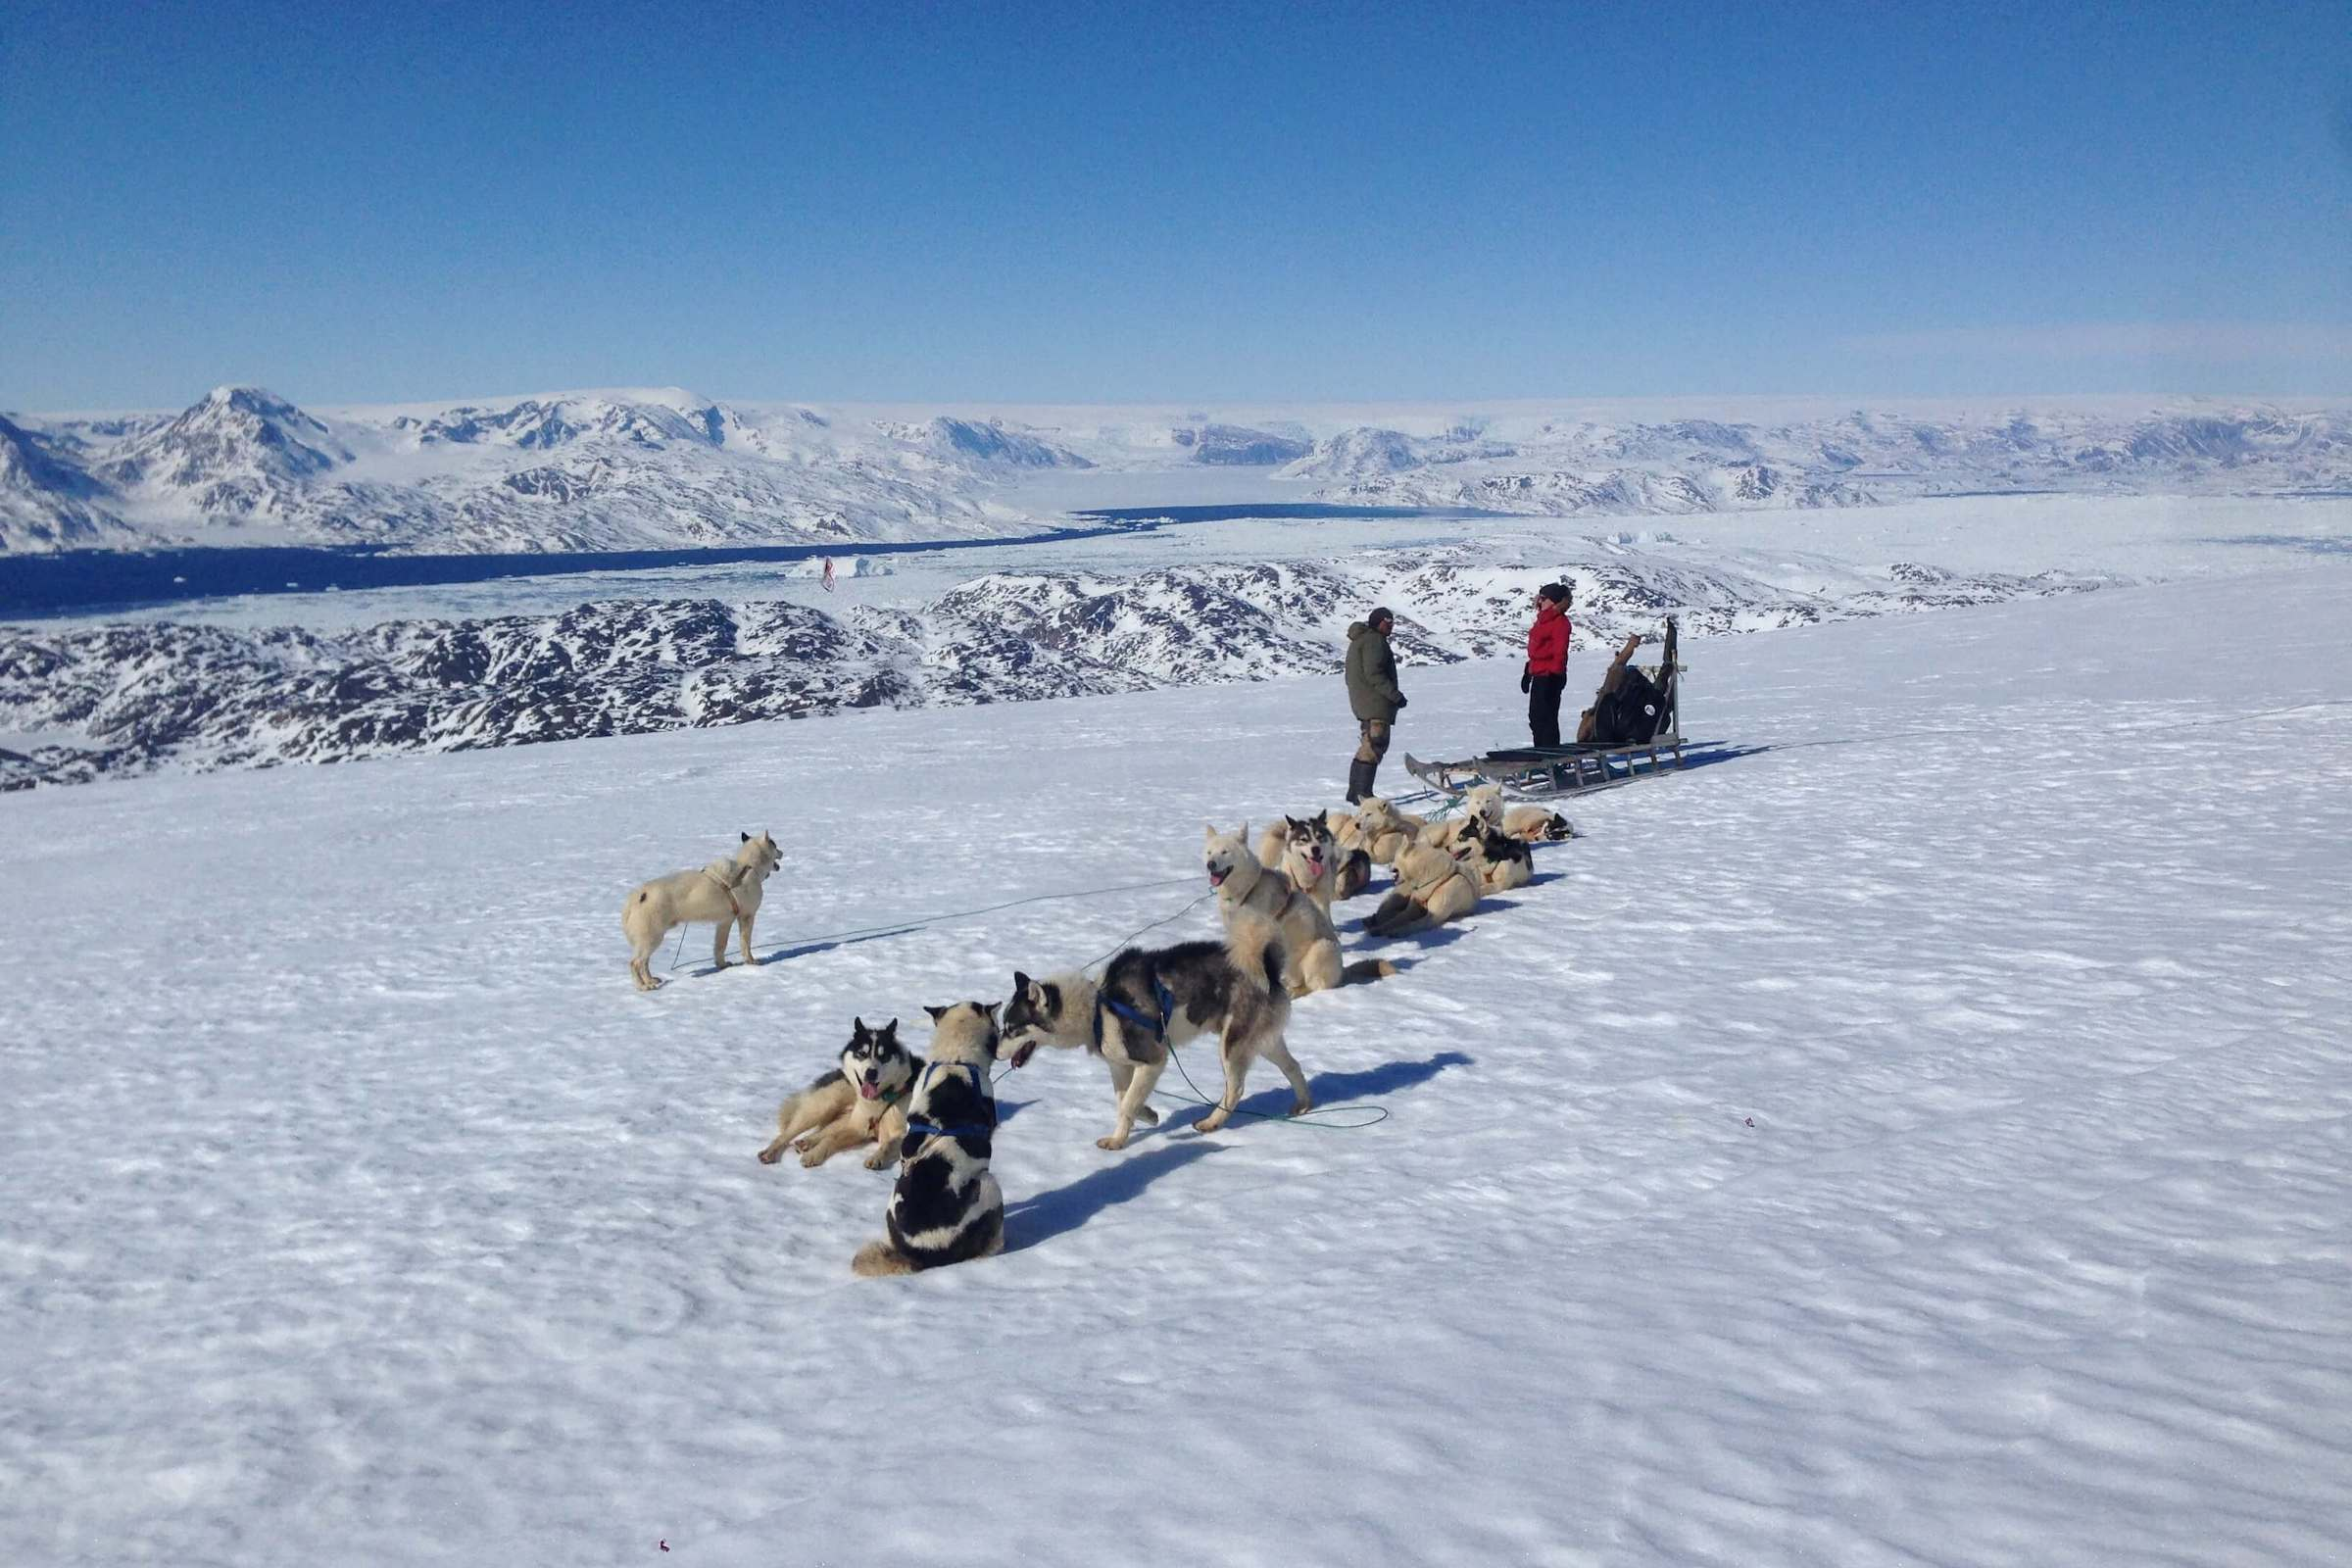 Two people taking a rest on the dogsledding tour in winter. Photo by Line Kristiansen